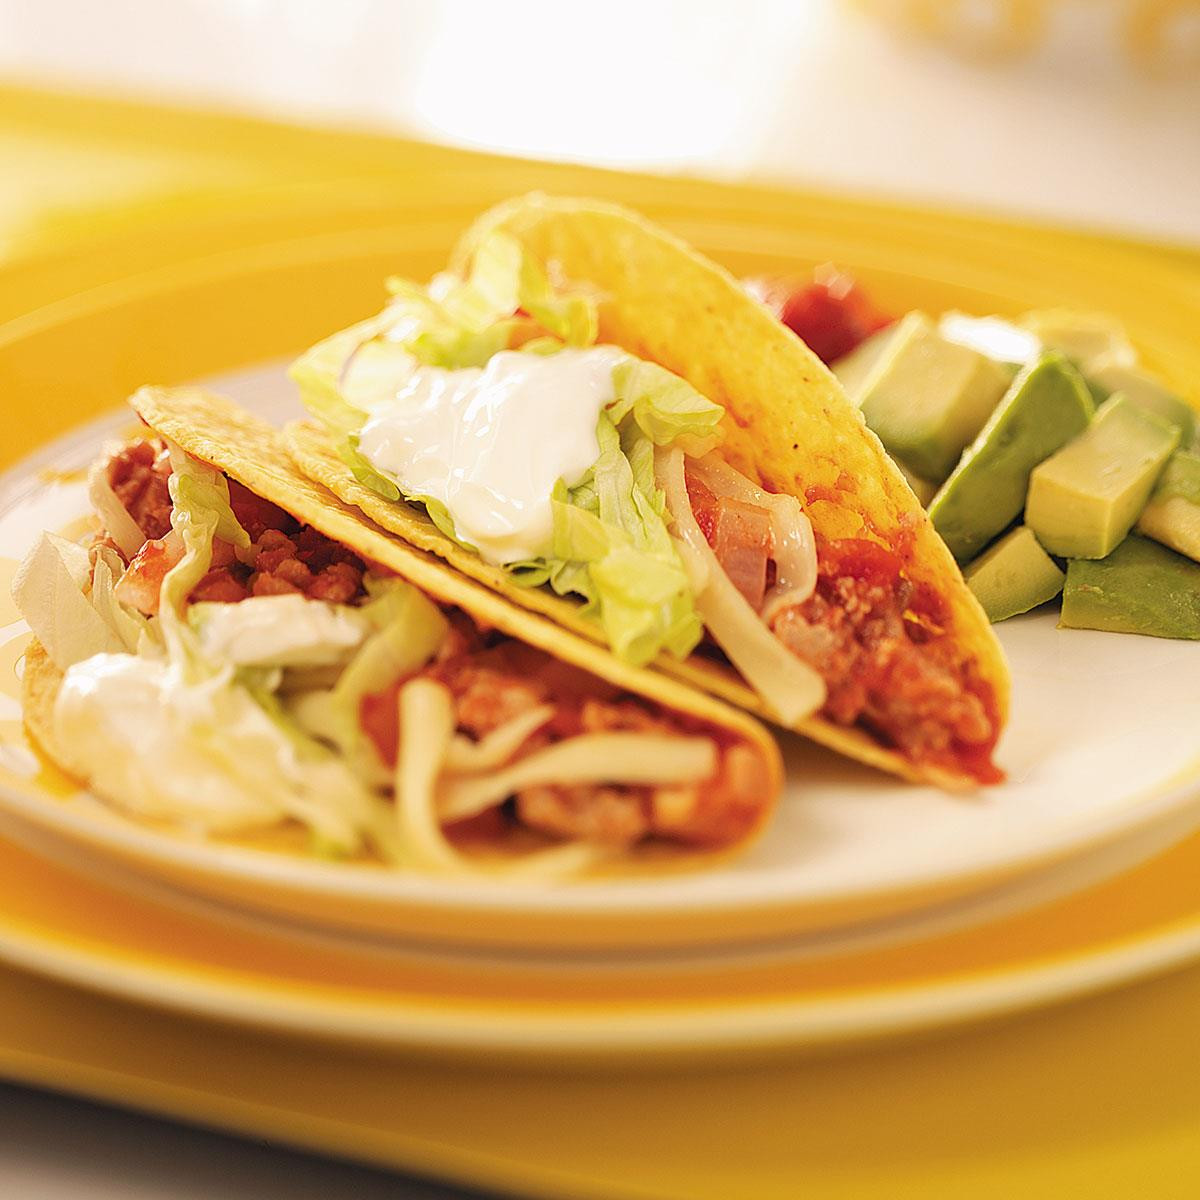 Spicy Thanksgiving Turkey Recipe  Spicy Turkey Tacos Recipe